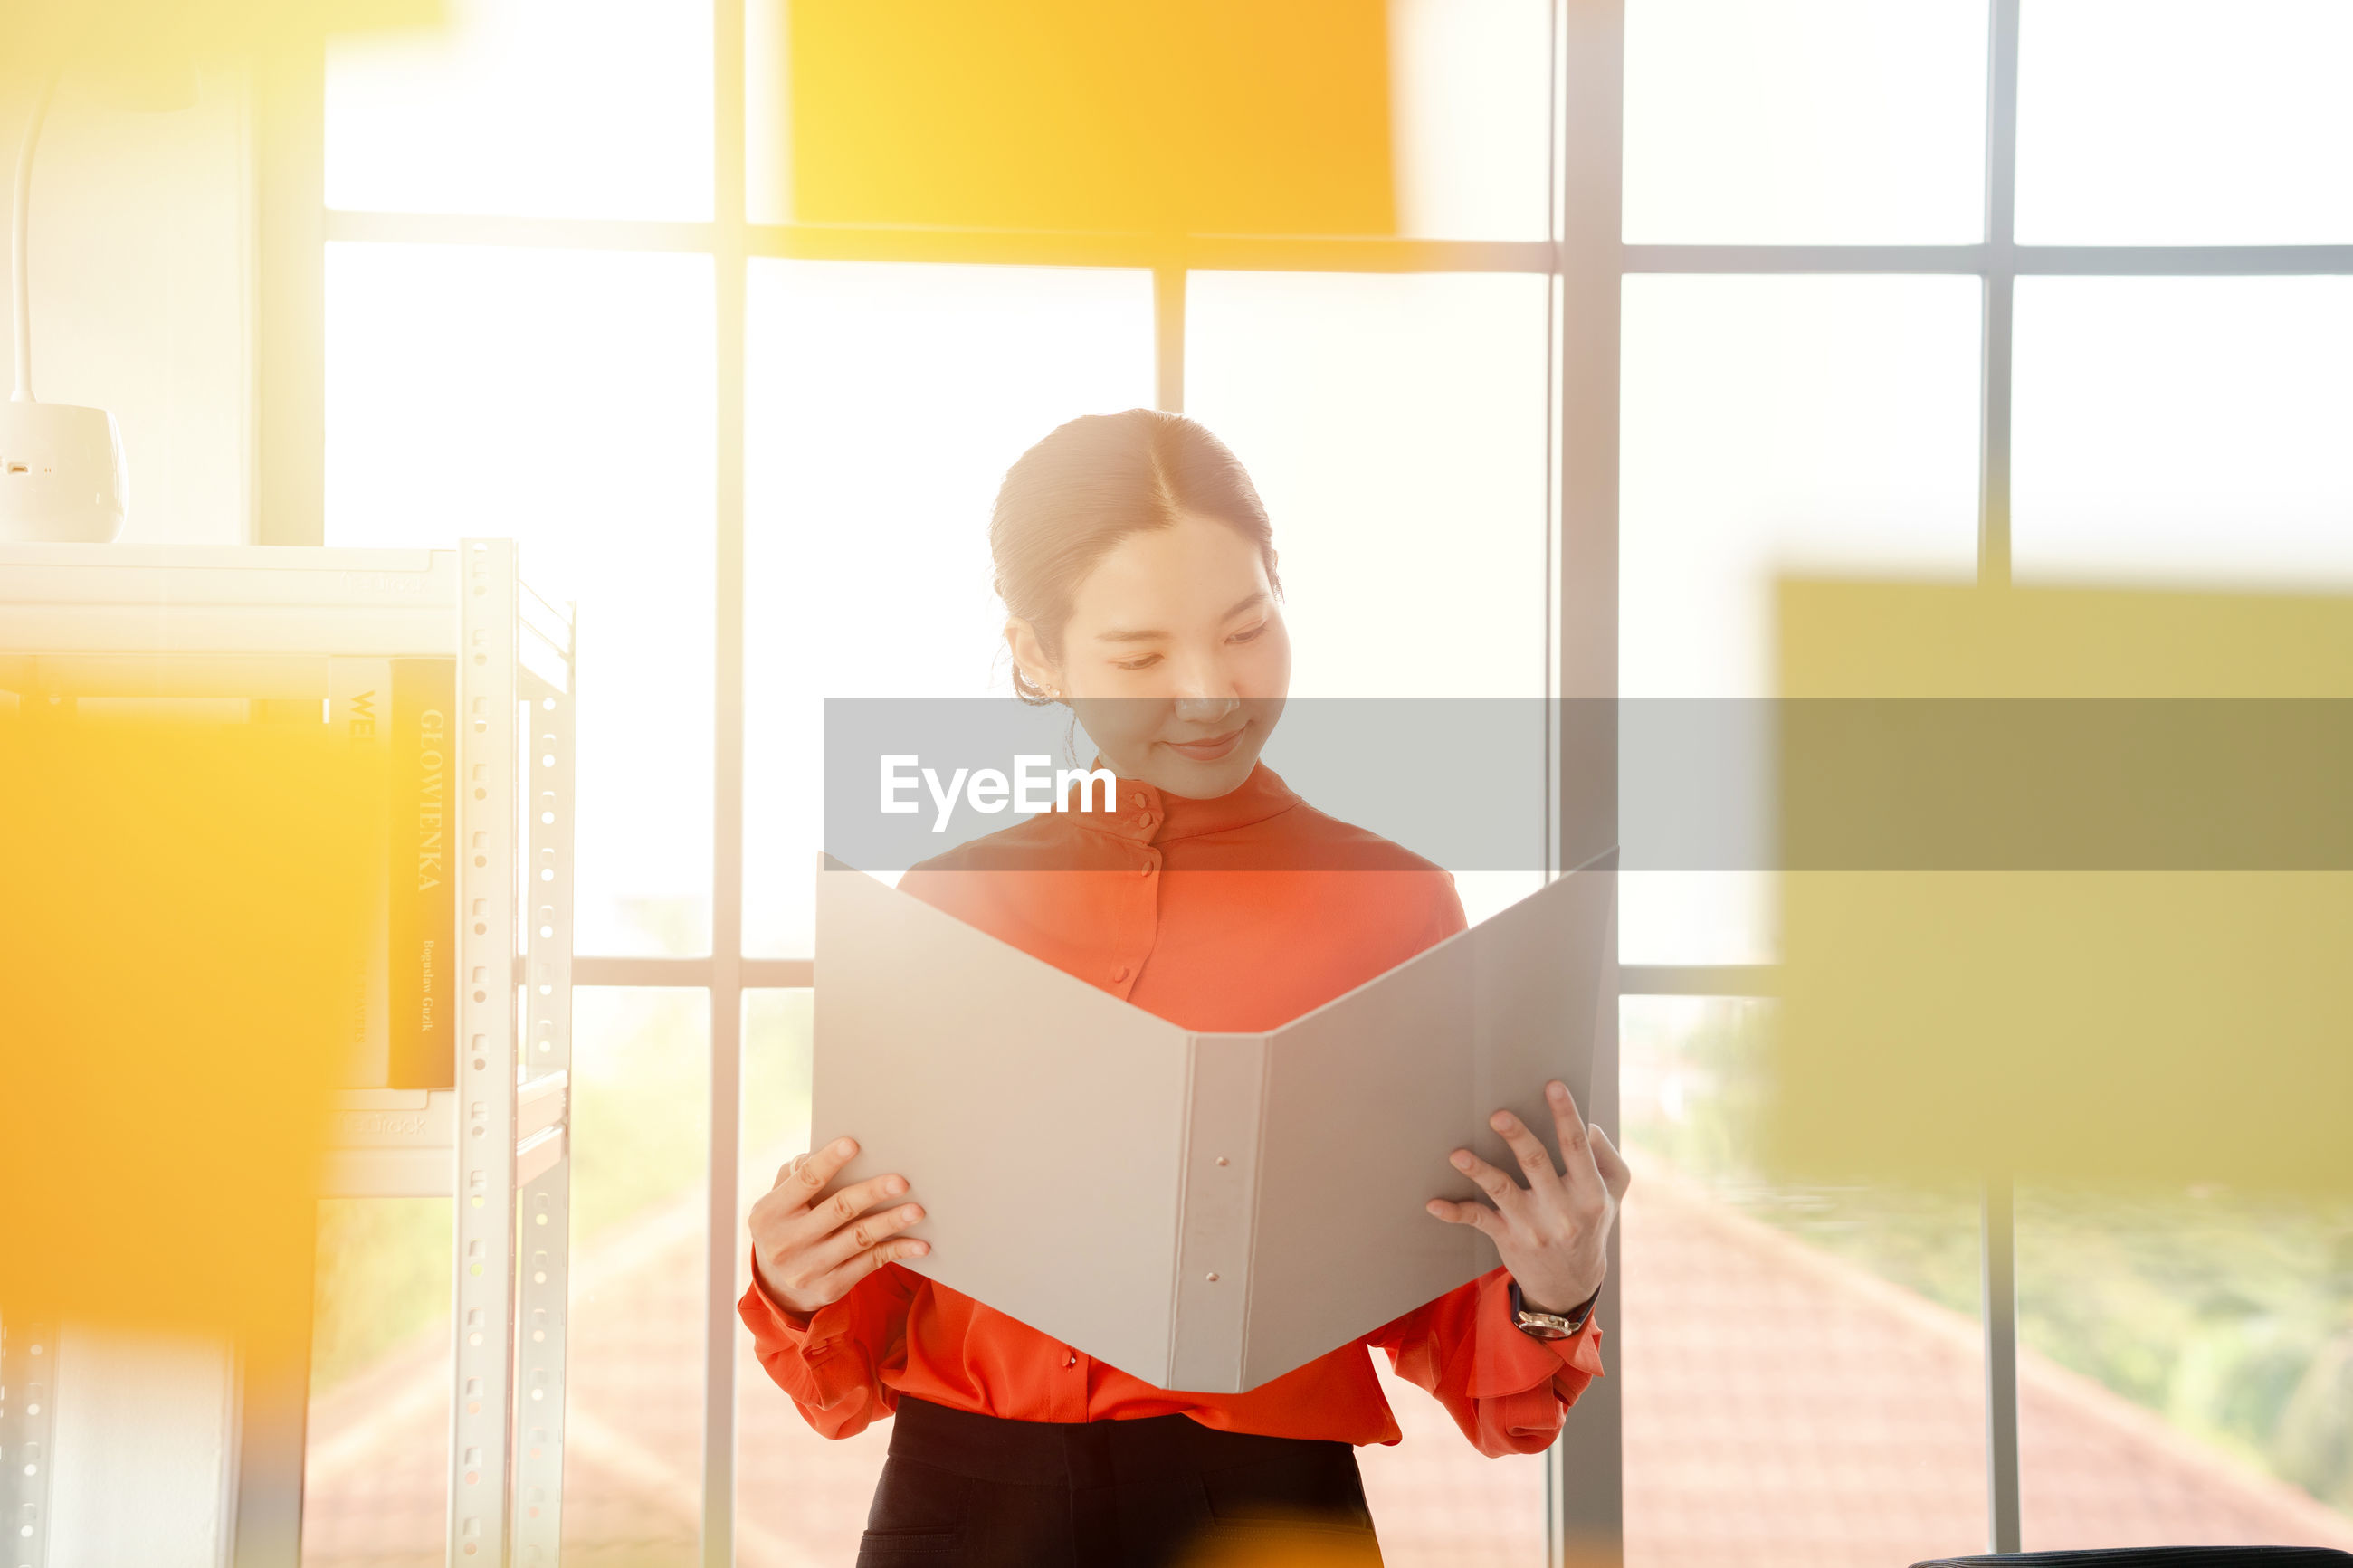 Woman reading file while standing in office seen through glass window